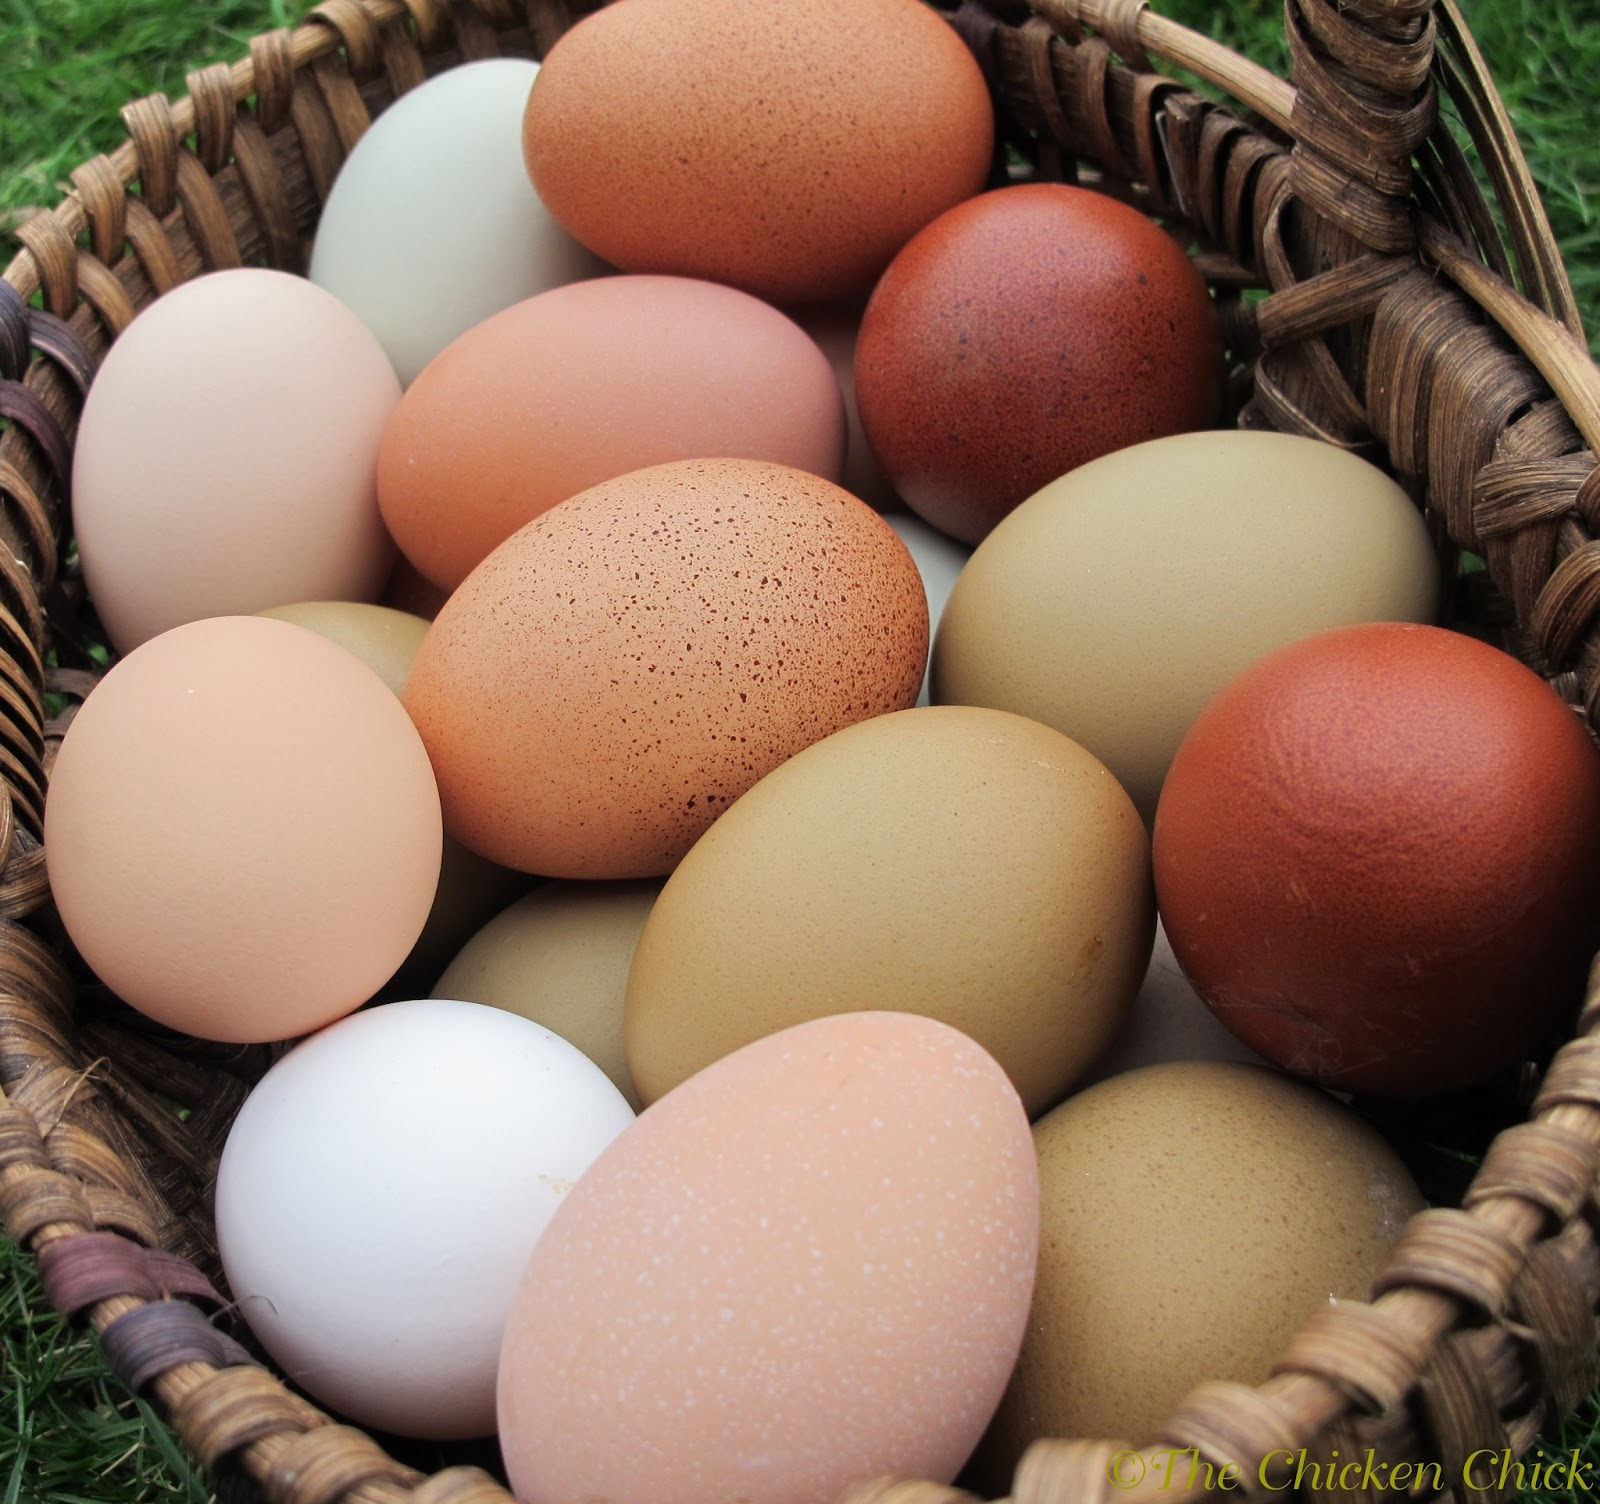 the chicken chick 8 tips for clean eggs from backyard